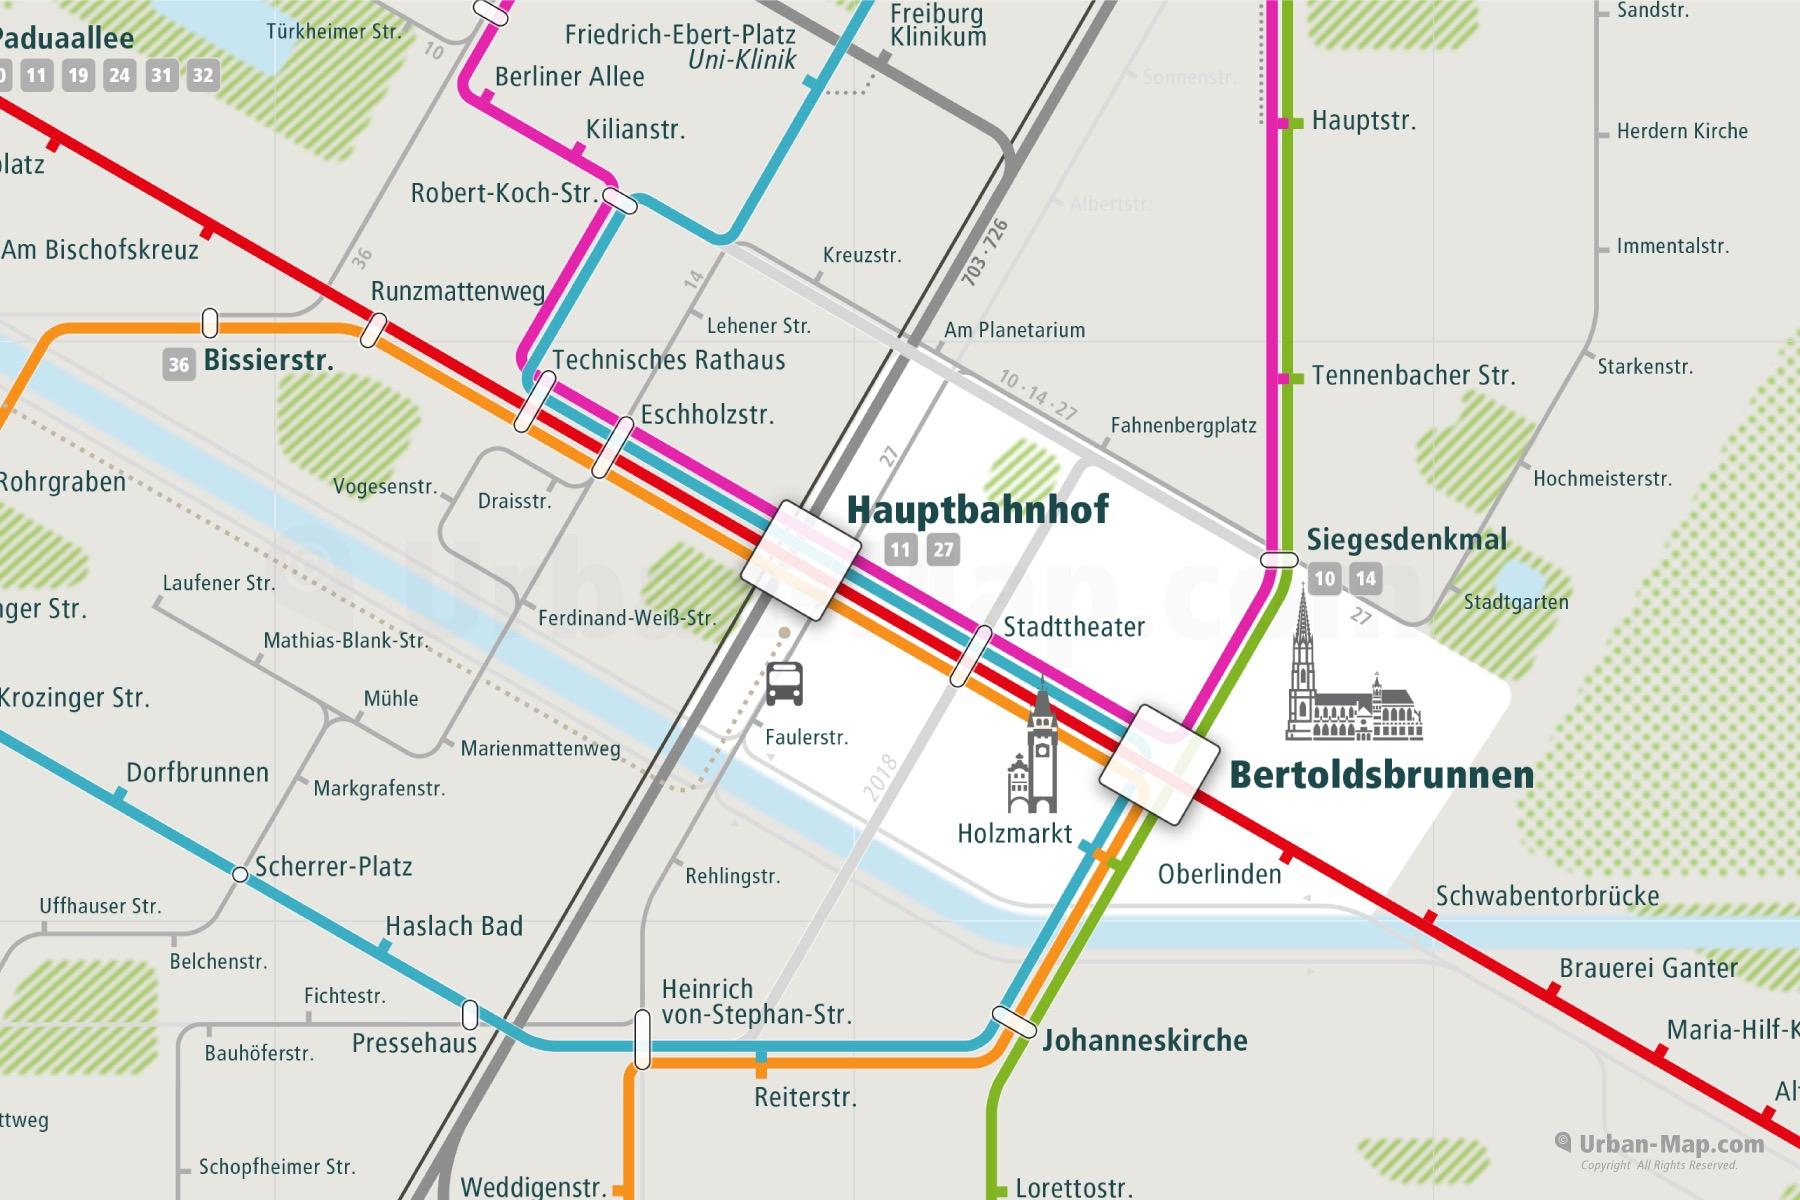 Freiburg Rail Map